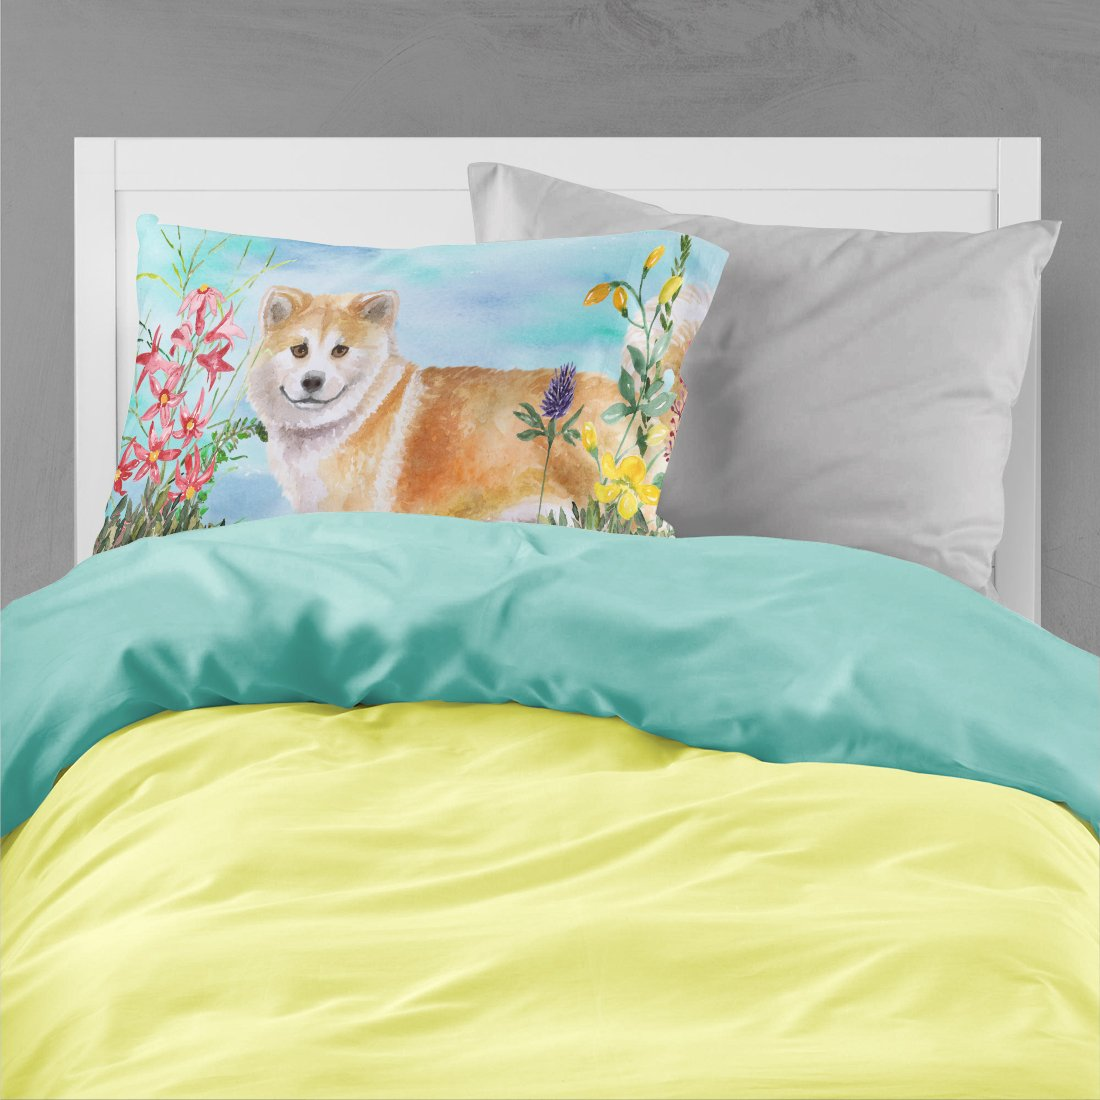 Shiba Inu Spring Fabric Standard Pillowcase CK1240PILLOWCASE by Caroline's Treasures